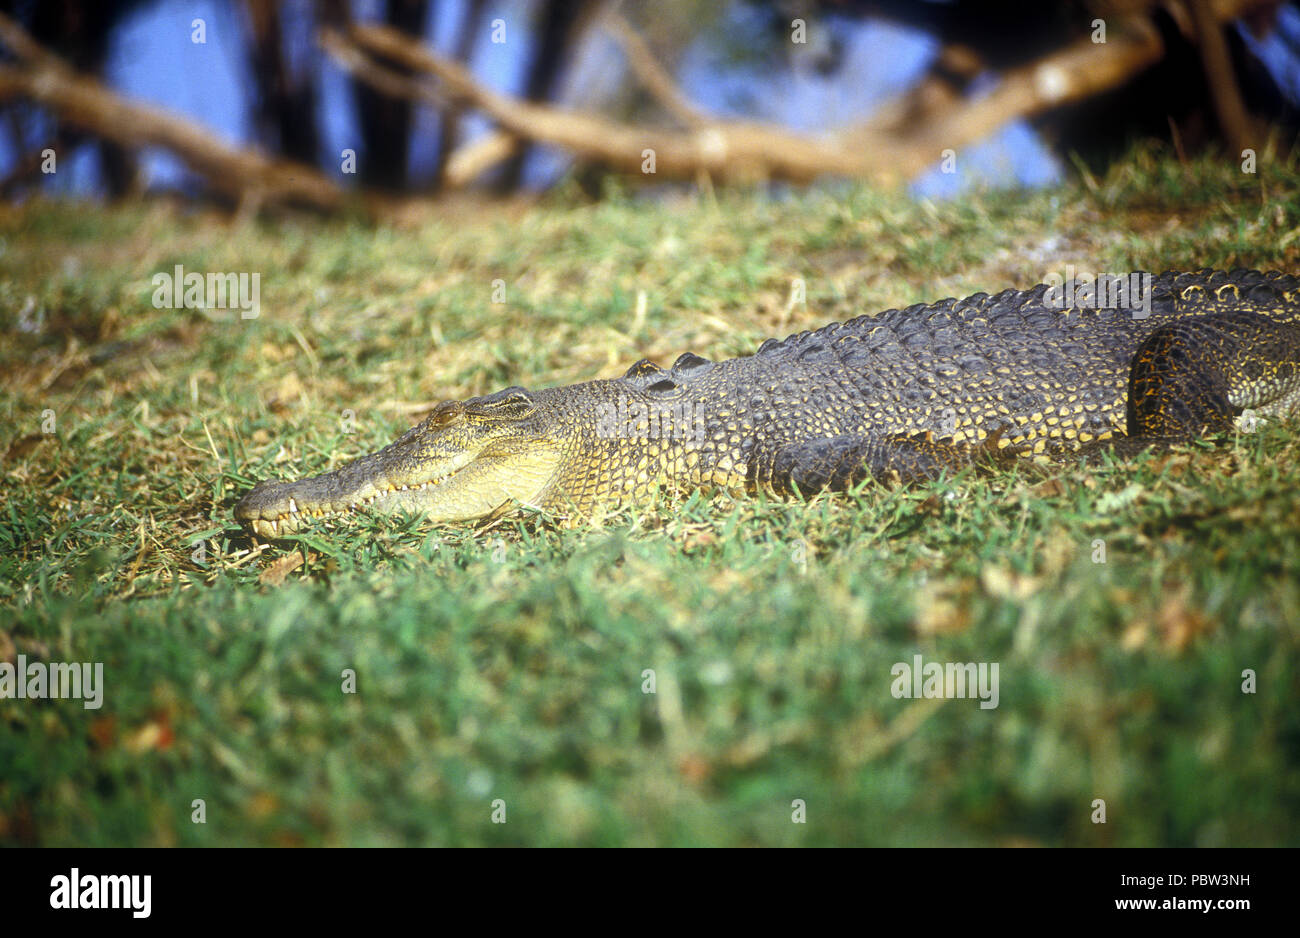 SALTWATER CROCODILE (CROCODYLUS POROSUS) ON THE BANKS OF THE REYNOLDS RIVER, NORTHERN TERRITORY, AUSTRALIA - Stock Image